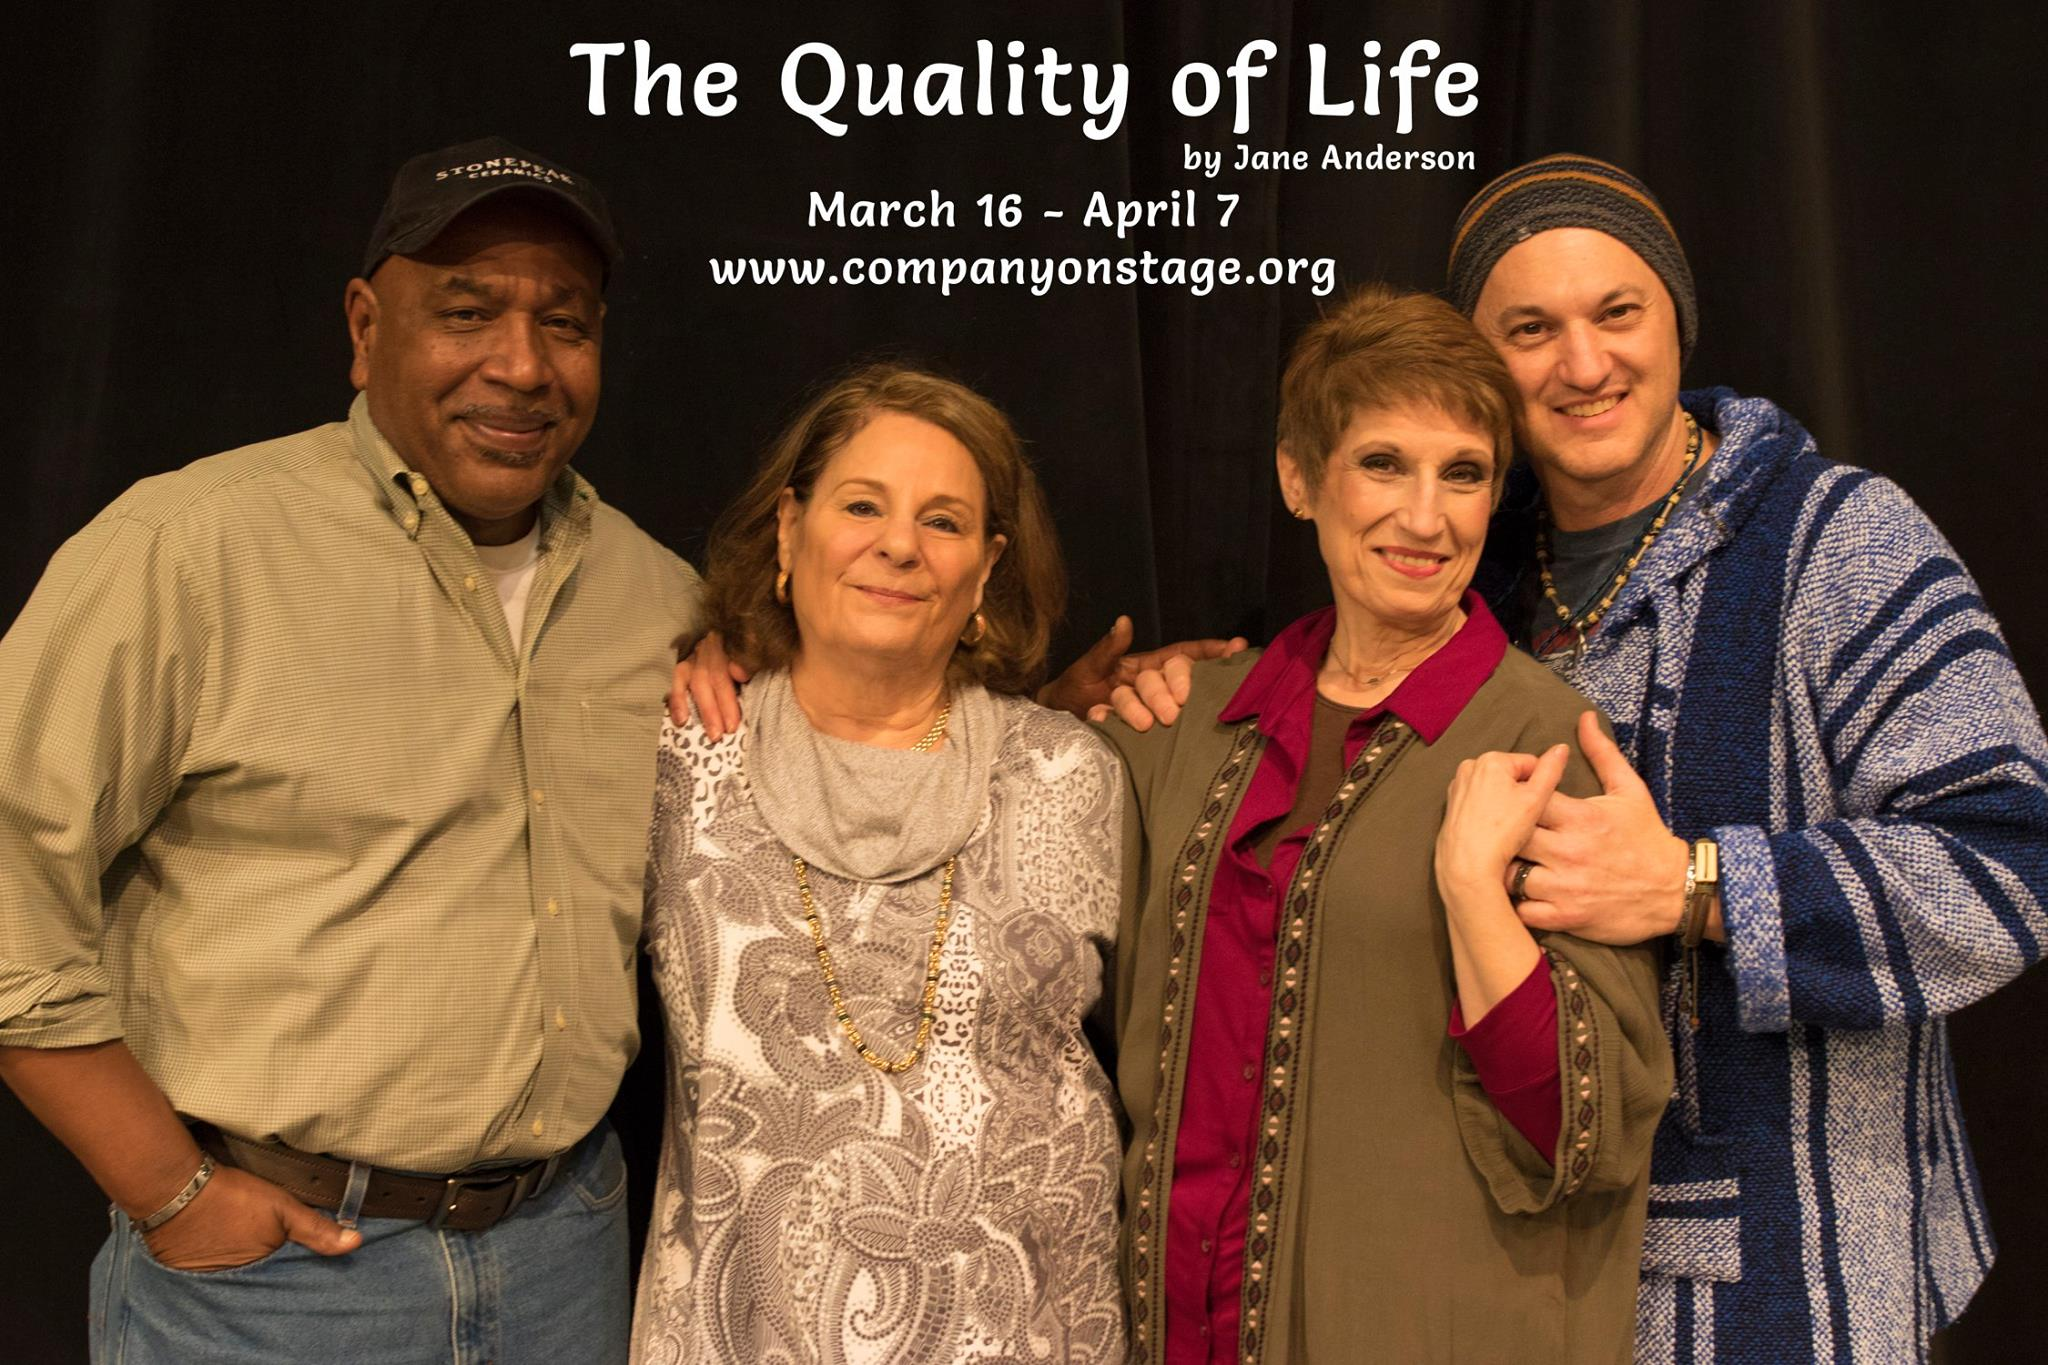 The Quality of Life by Jane Anderson